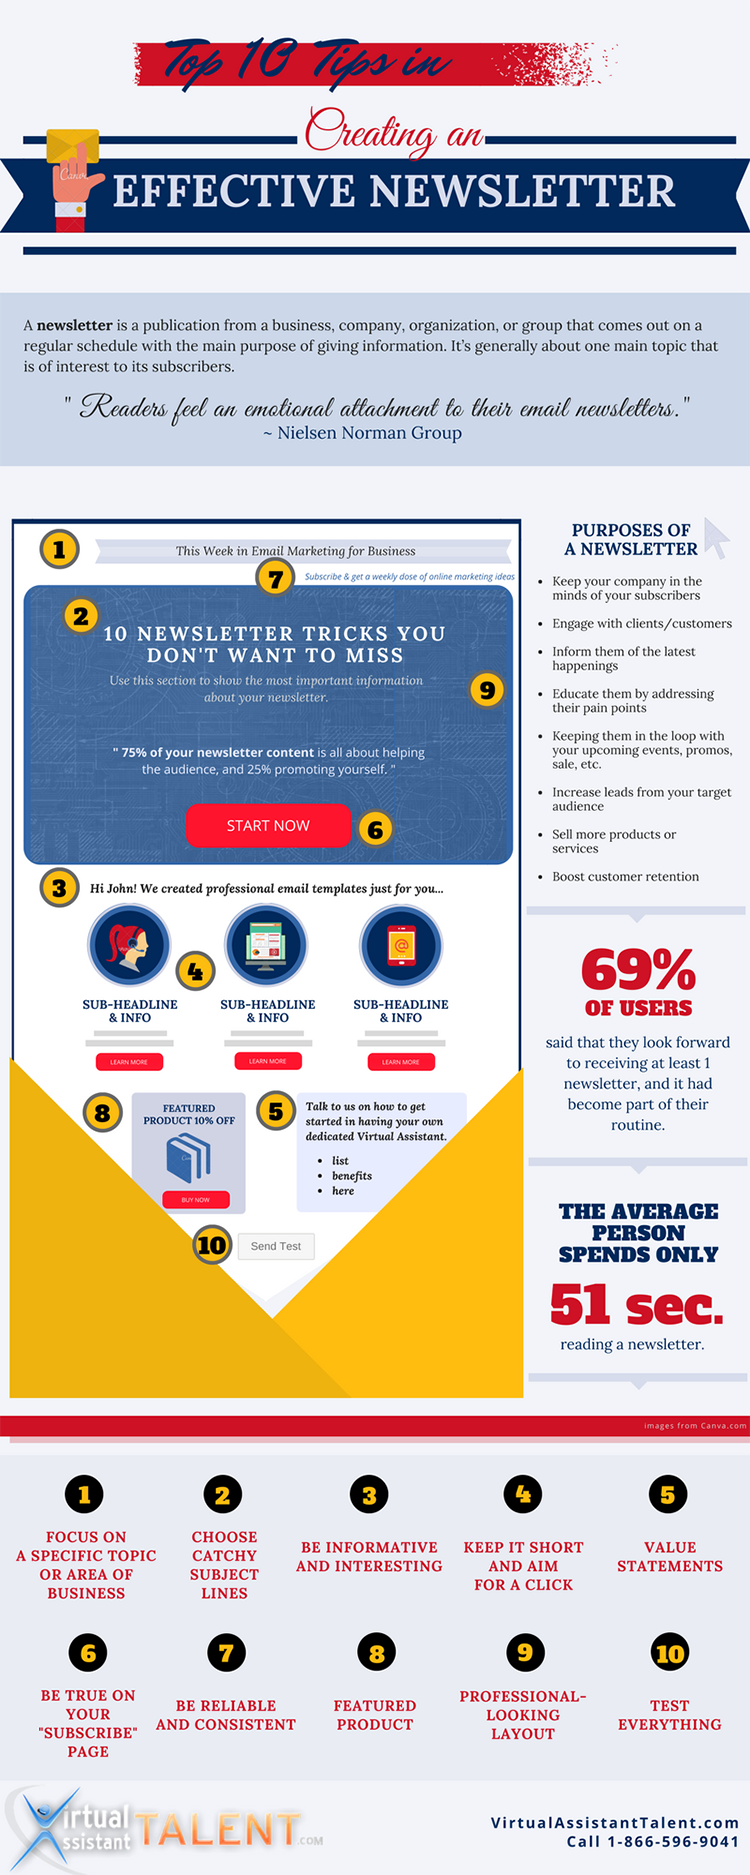 Top Tips to Create an Effective Newsletter Content